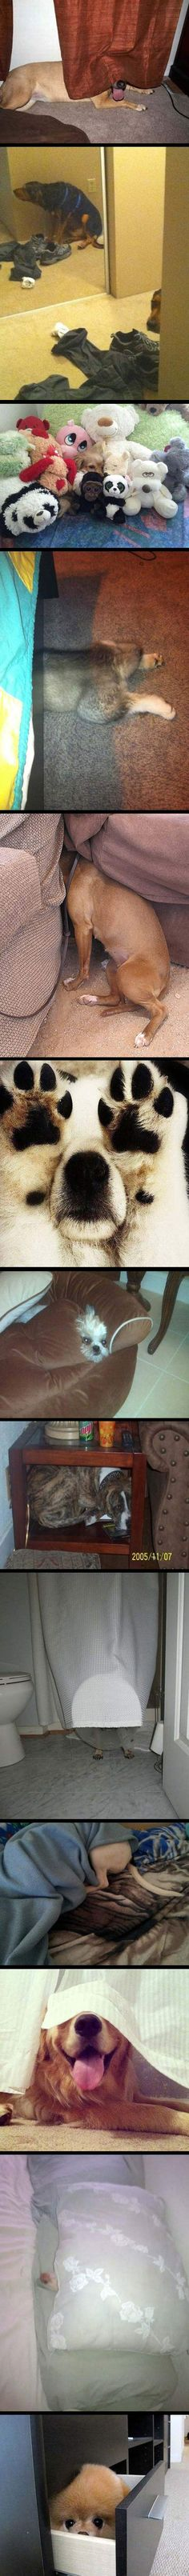 Dogs that are really bad at hide and seek